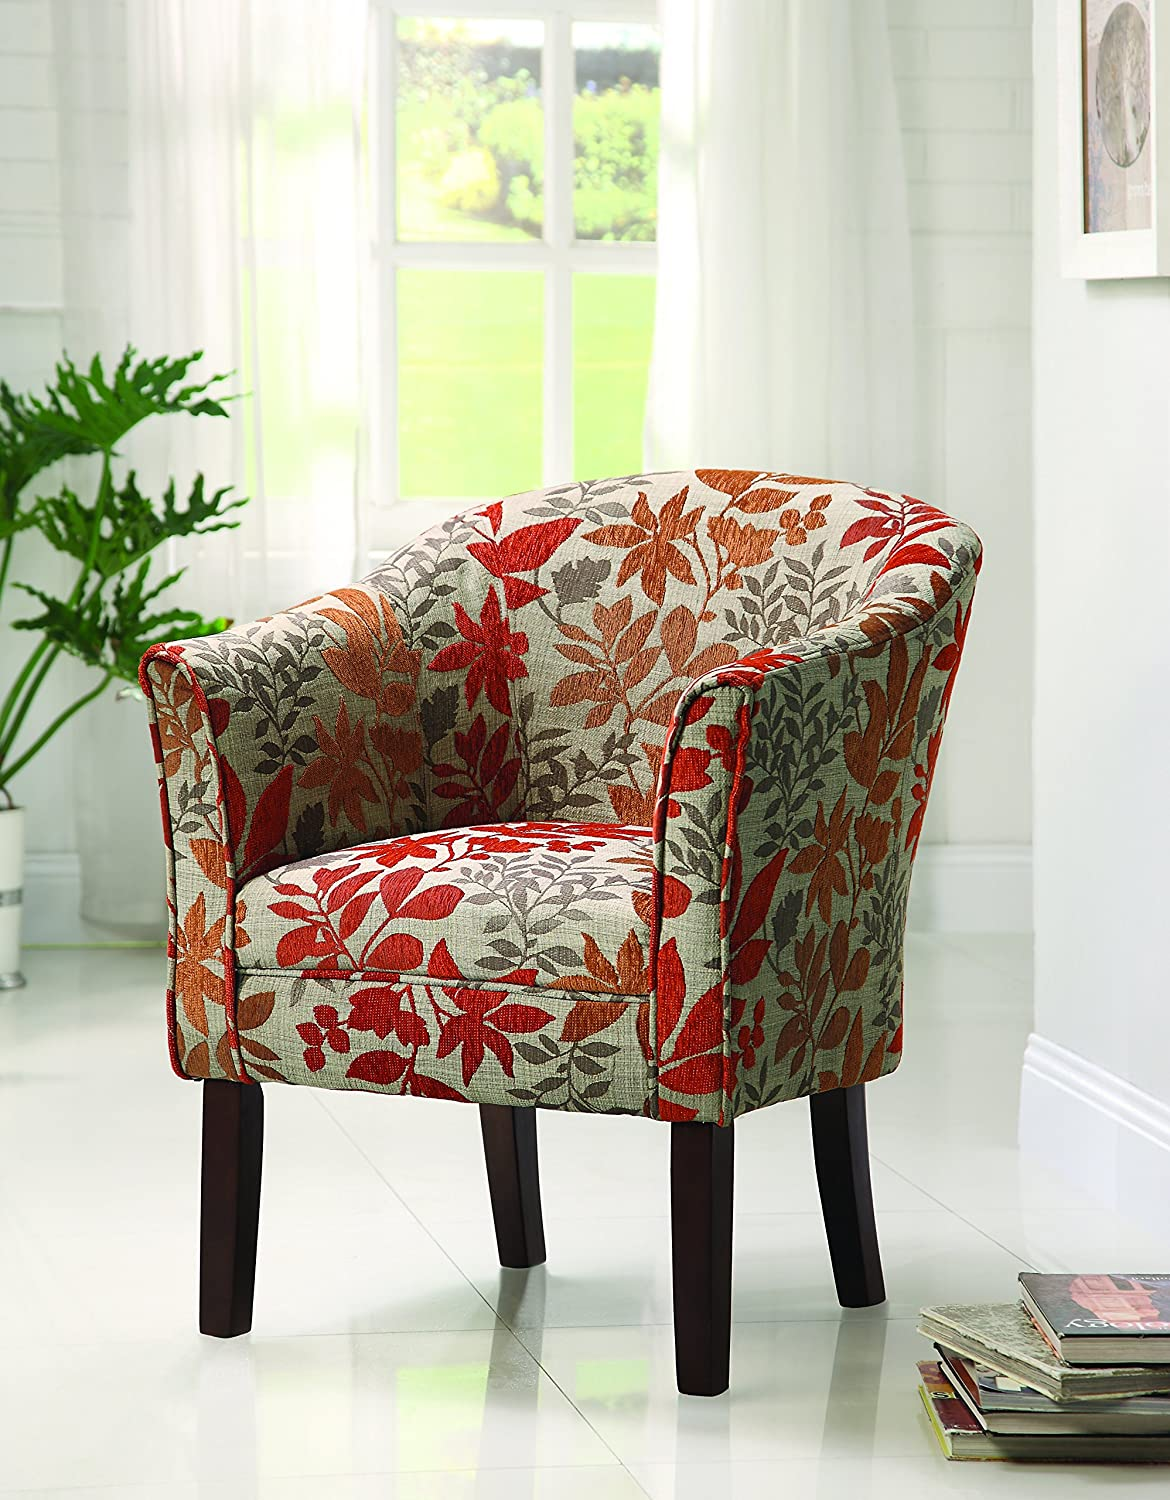 Furniture accent furniture club accent chairs red barrel studio - Amazon Com Coaster460407 Floral Barrel Back Accent Chair Kitchen Dining